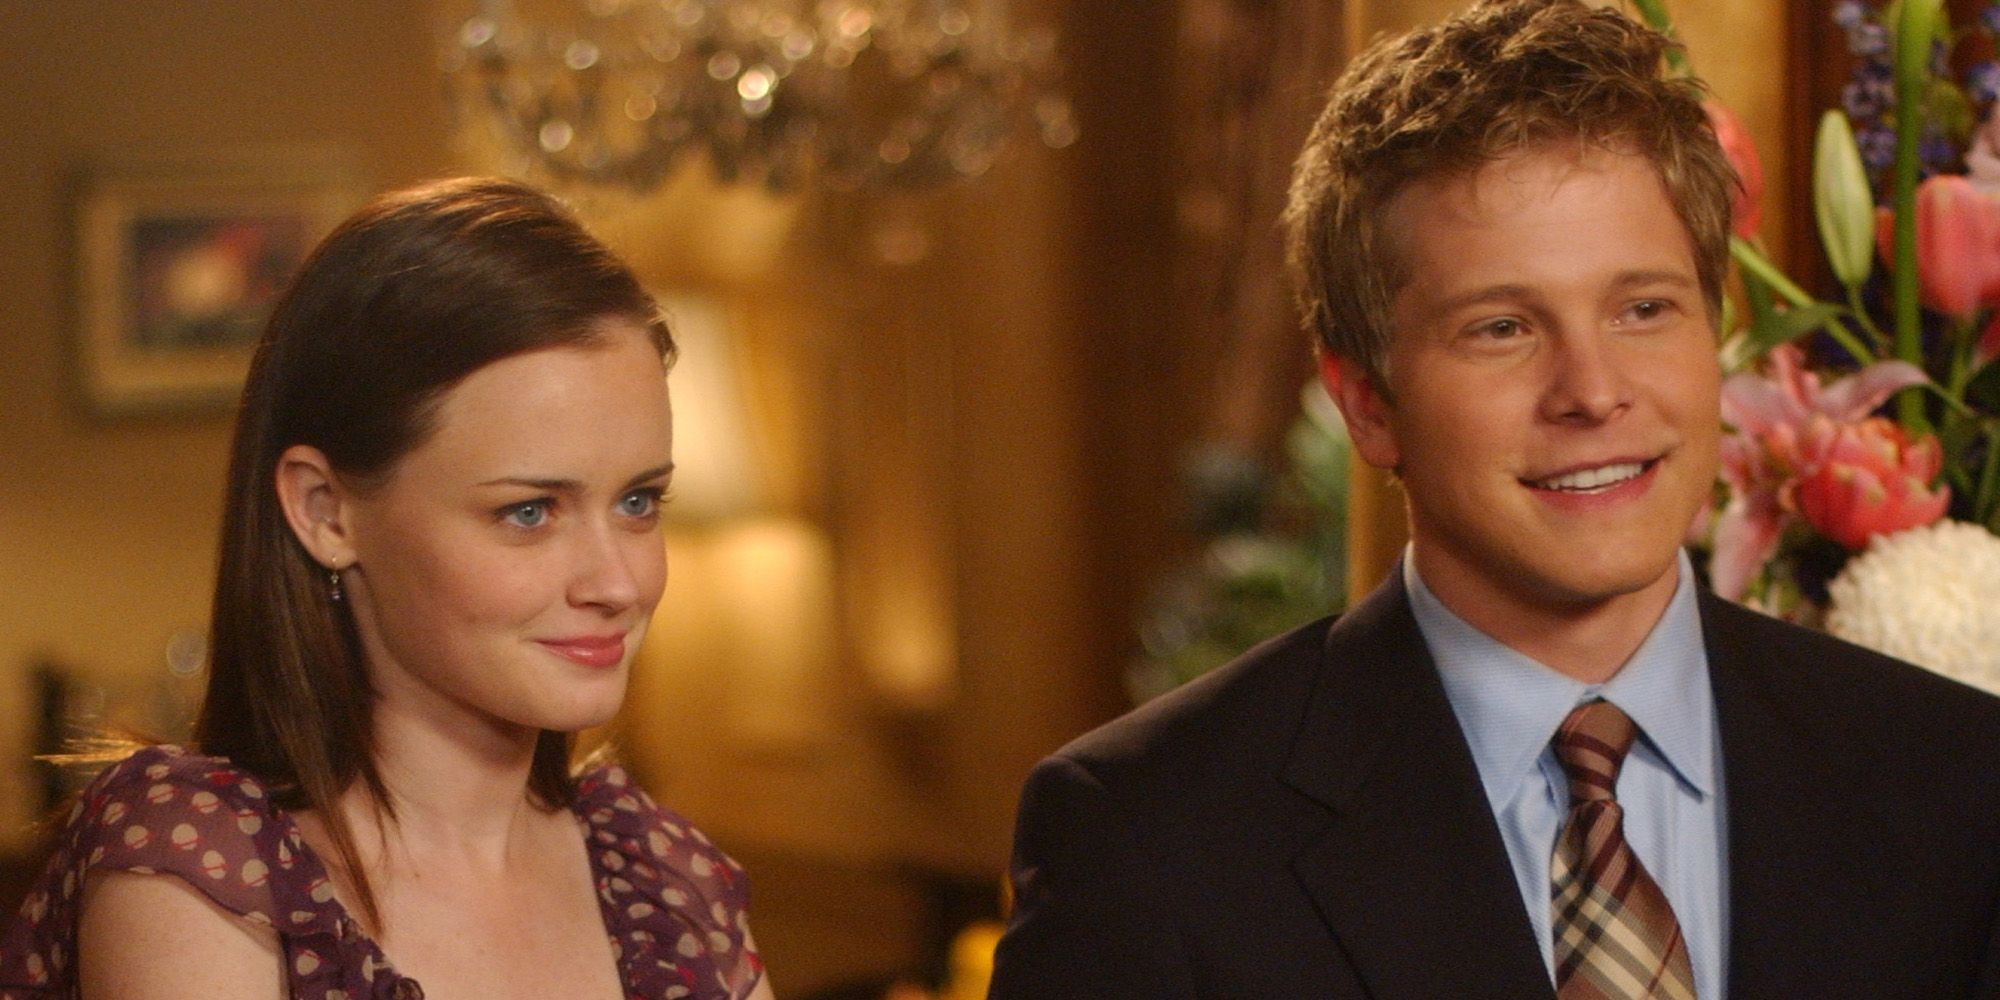 Rory Gilmore End Up